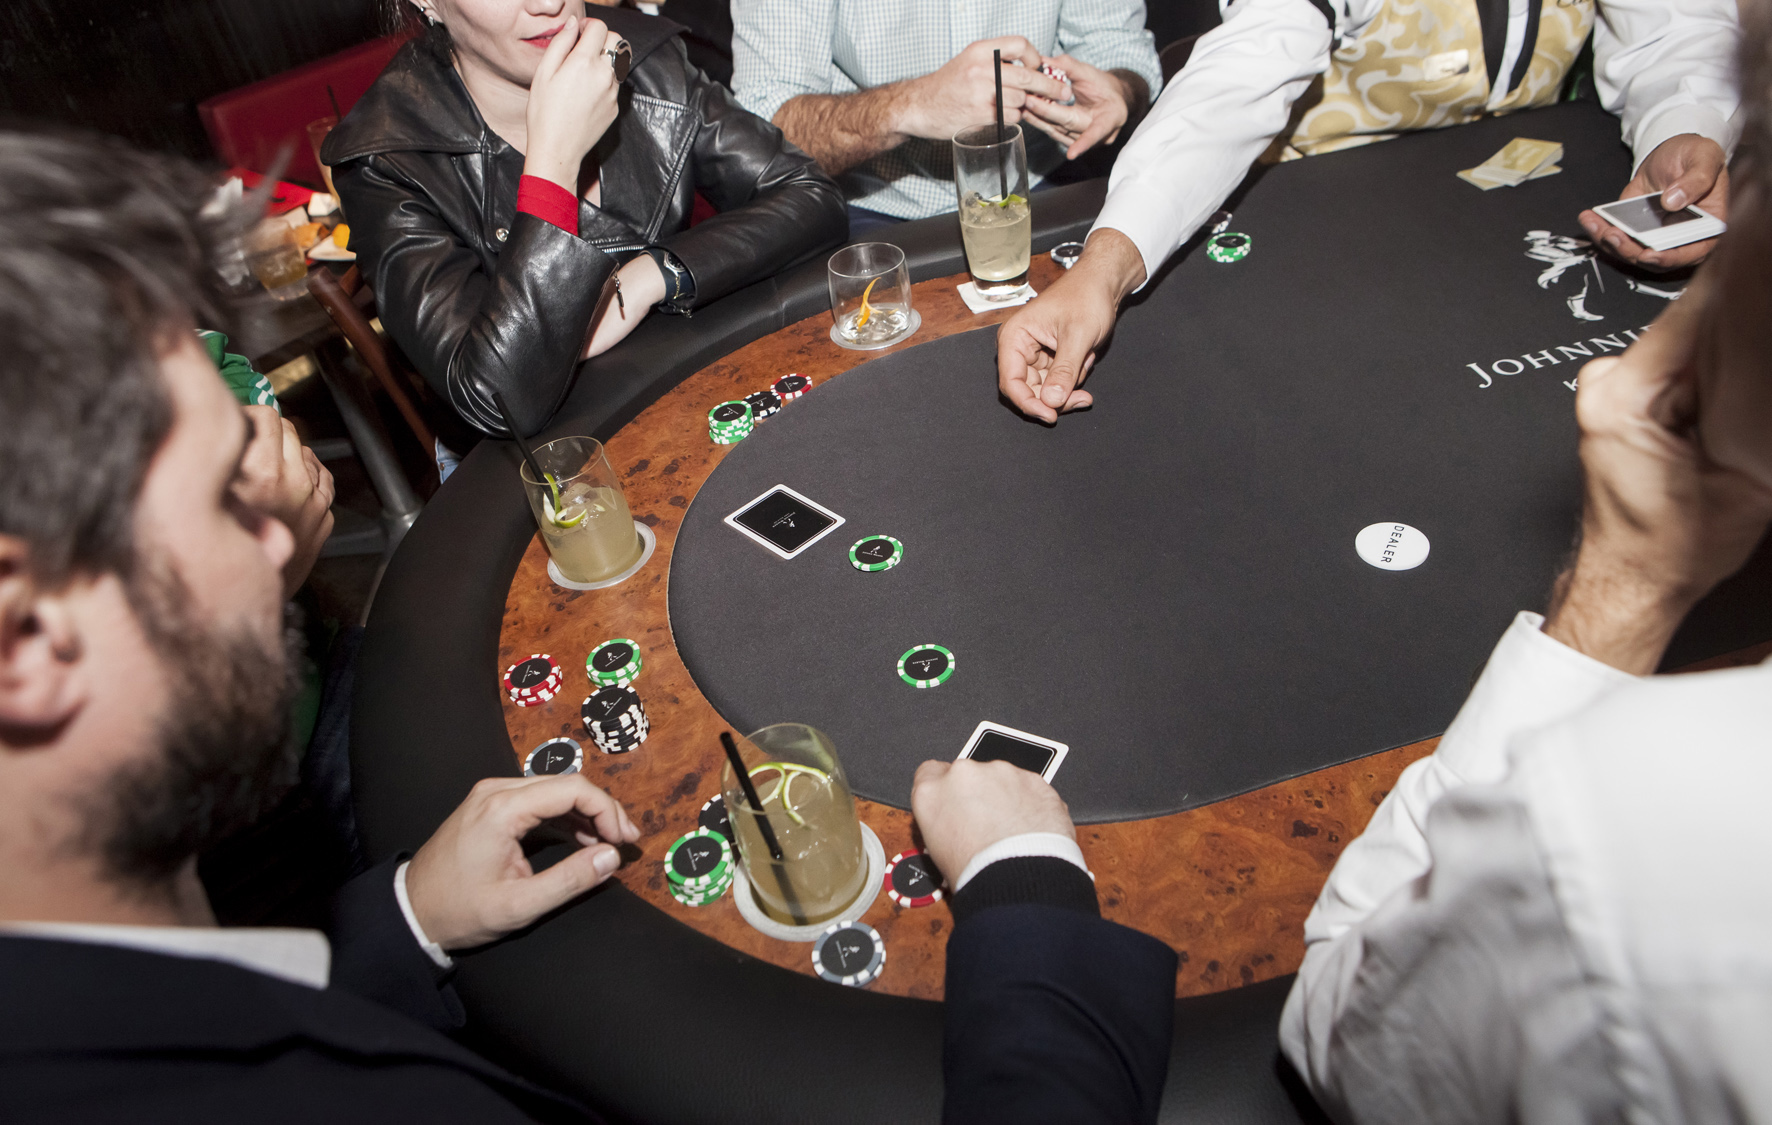 Johnnie Walker Poker Night 12, cred Rodrigo Capote pq